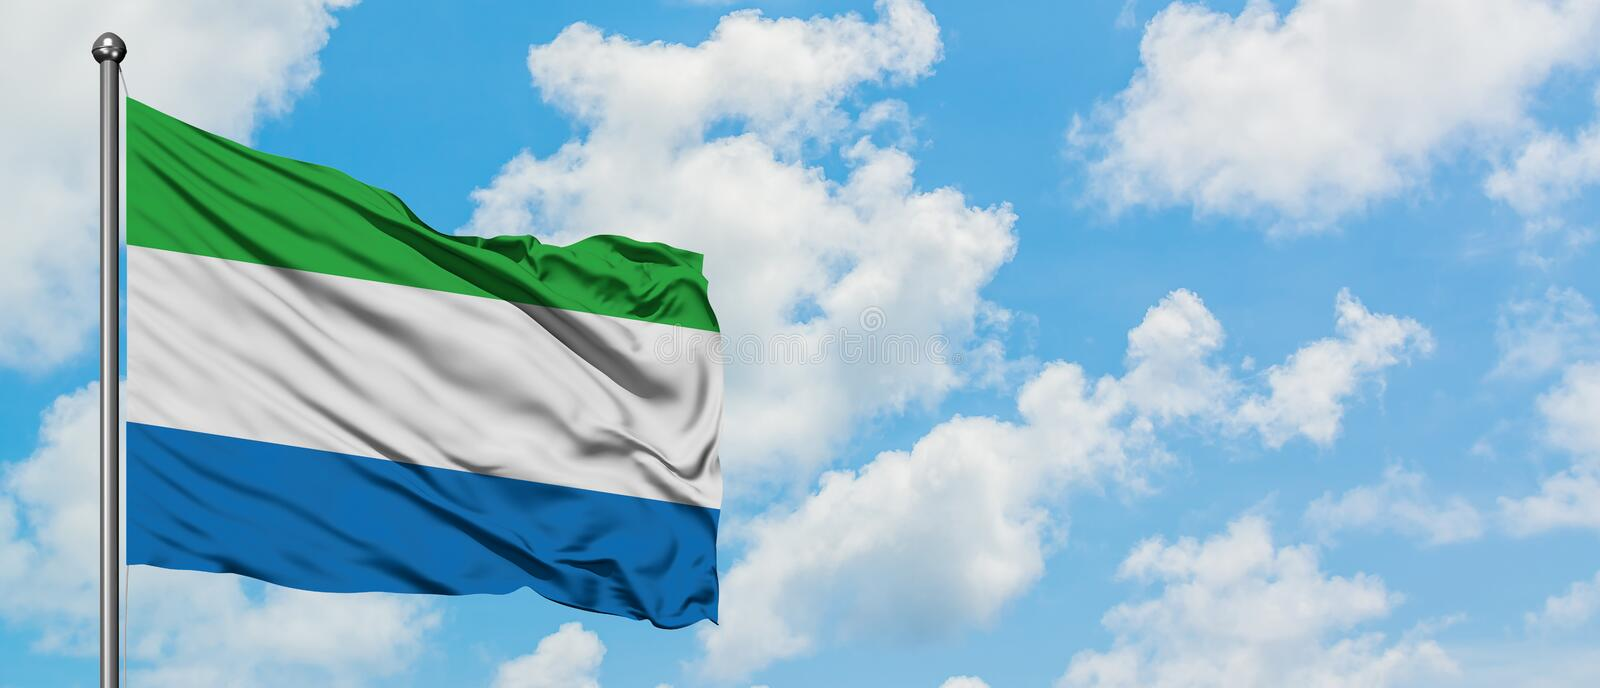 Sierra Leone flag waving in the wind against white cloudy blue sky. Diplomacy concept, international relations.  royalty free stock photo